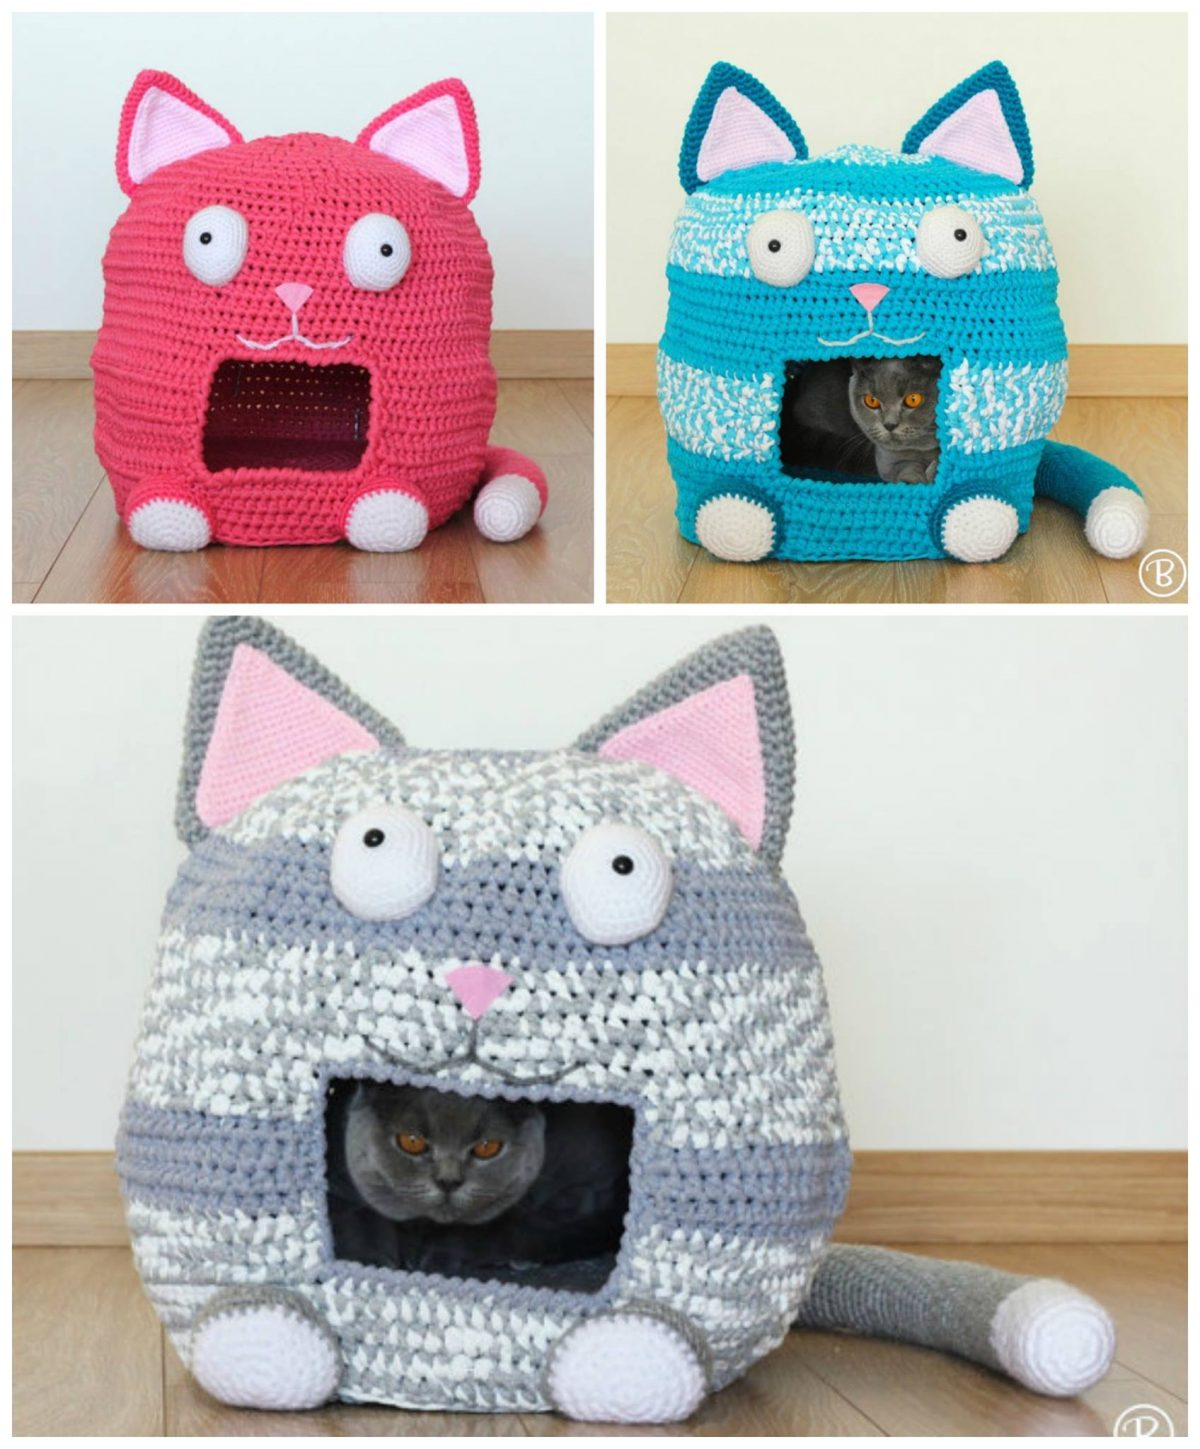 Pattern Crochet cat bed PDF tutorial with photo and pattern | Etsy | 1449x1200